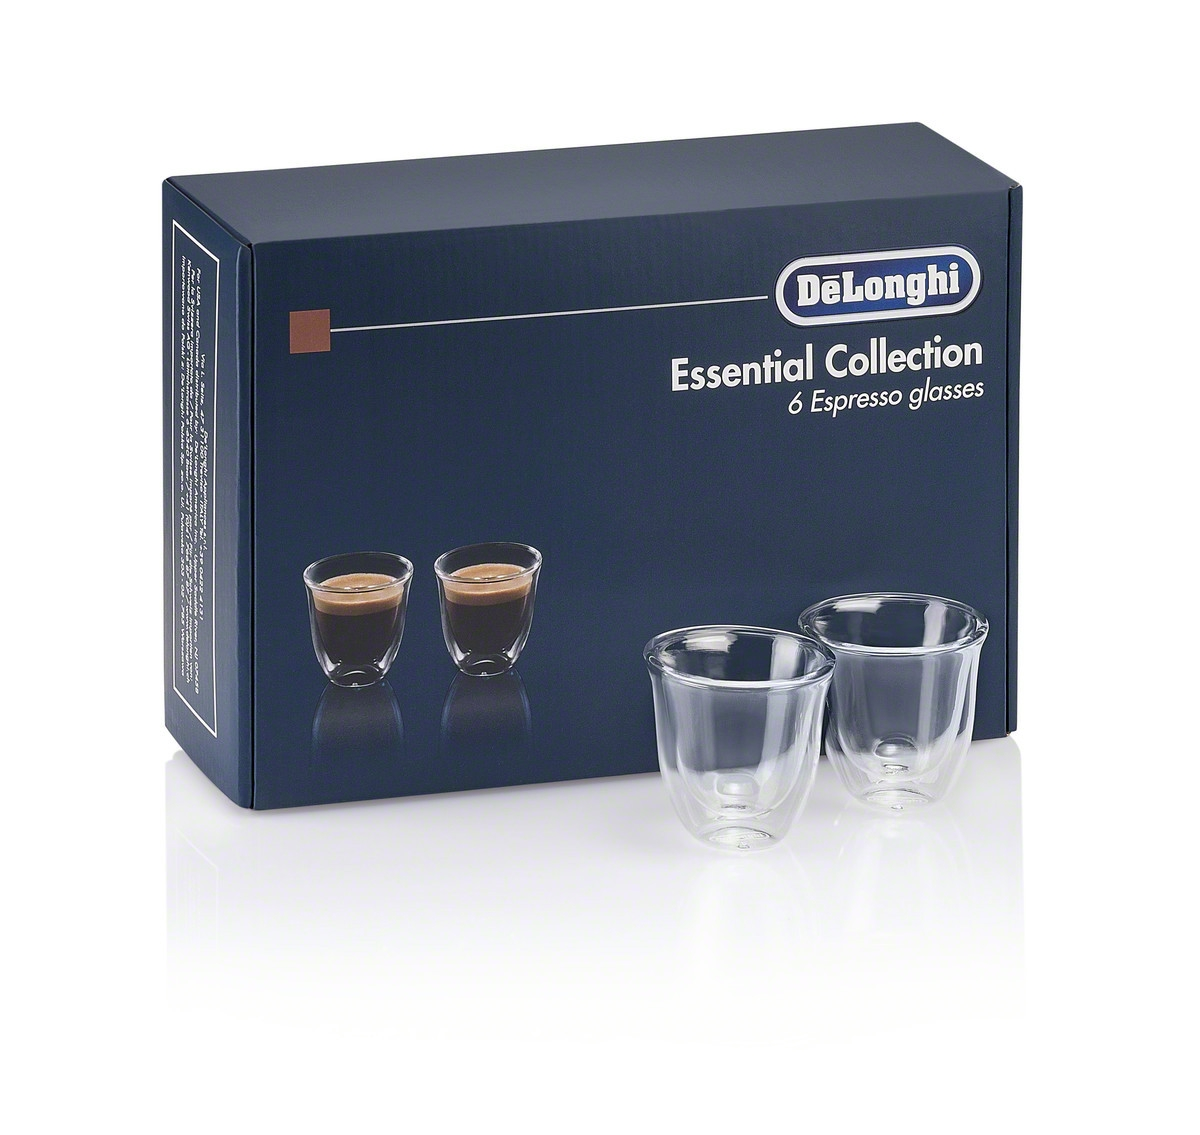 De'Longhi Gift Set 6 Espresso Double Wall Thermal Glasses